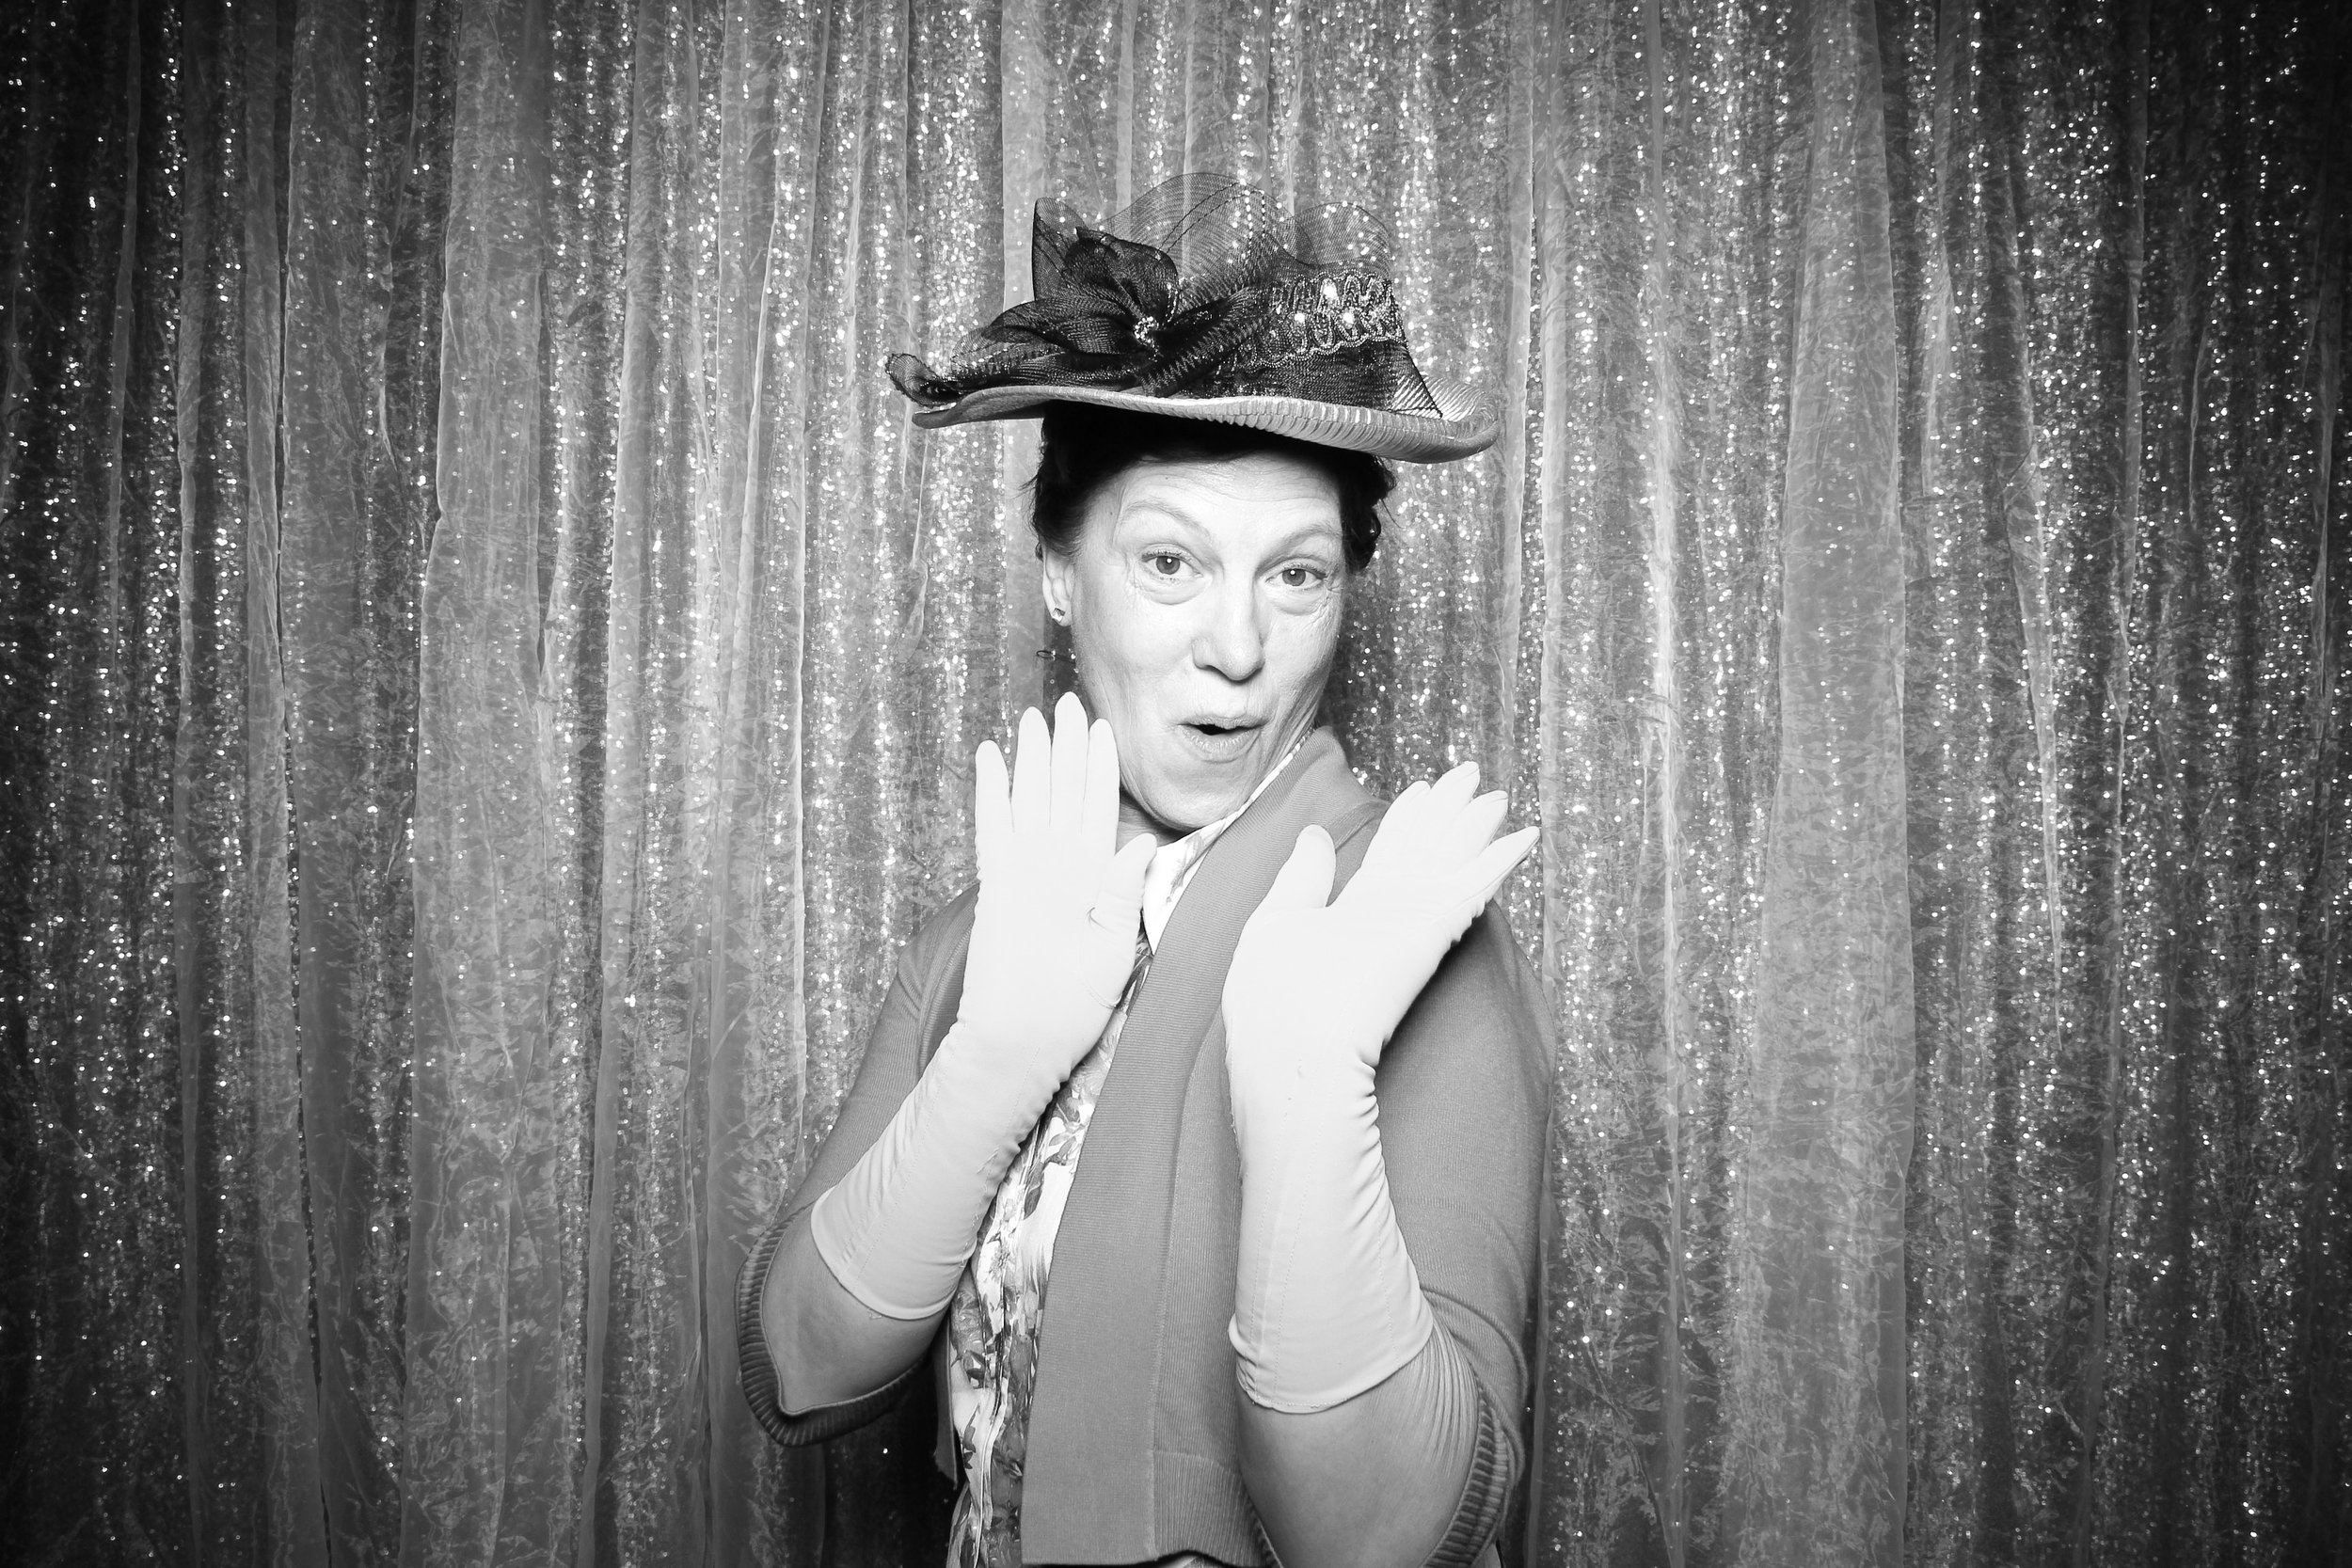 Chicago_Vintage_Wedding_Photobooth_Glen_Club_10.jpg